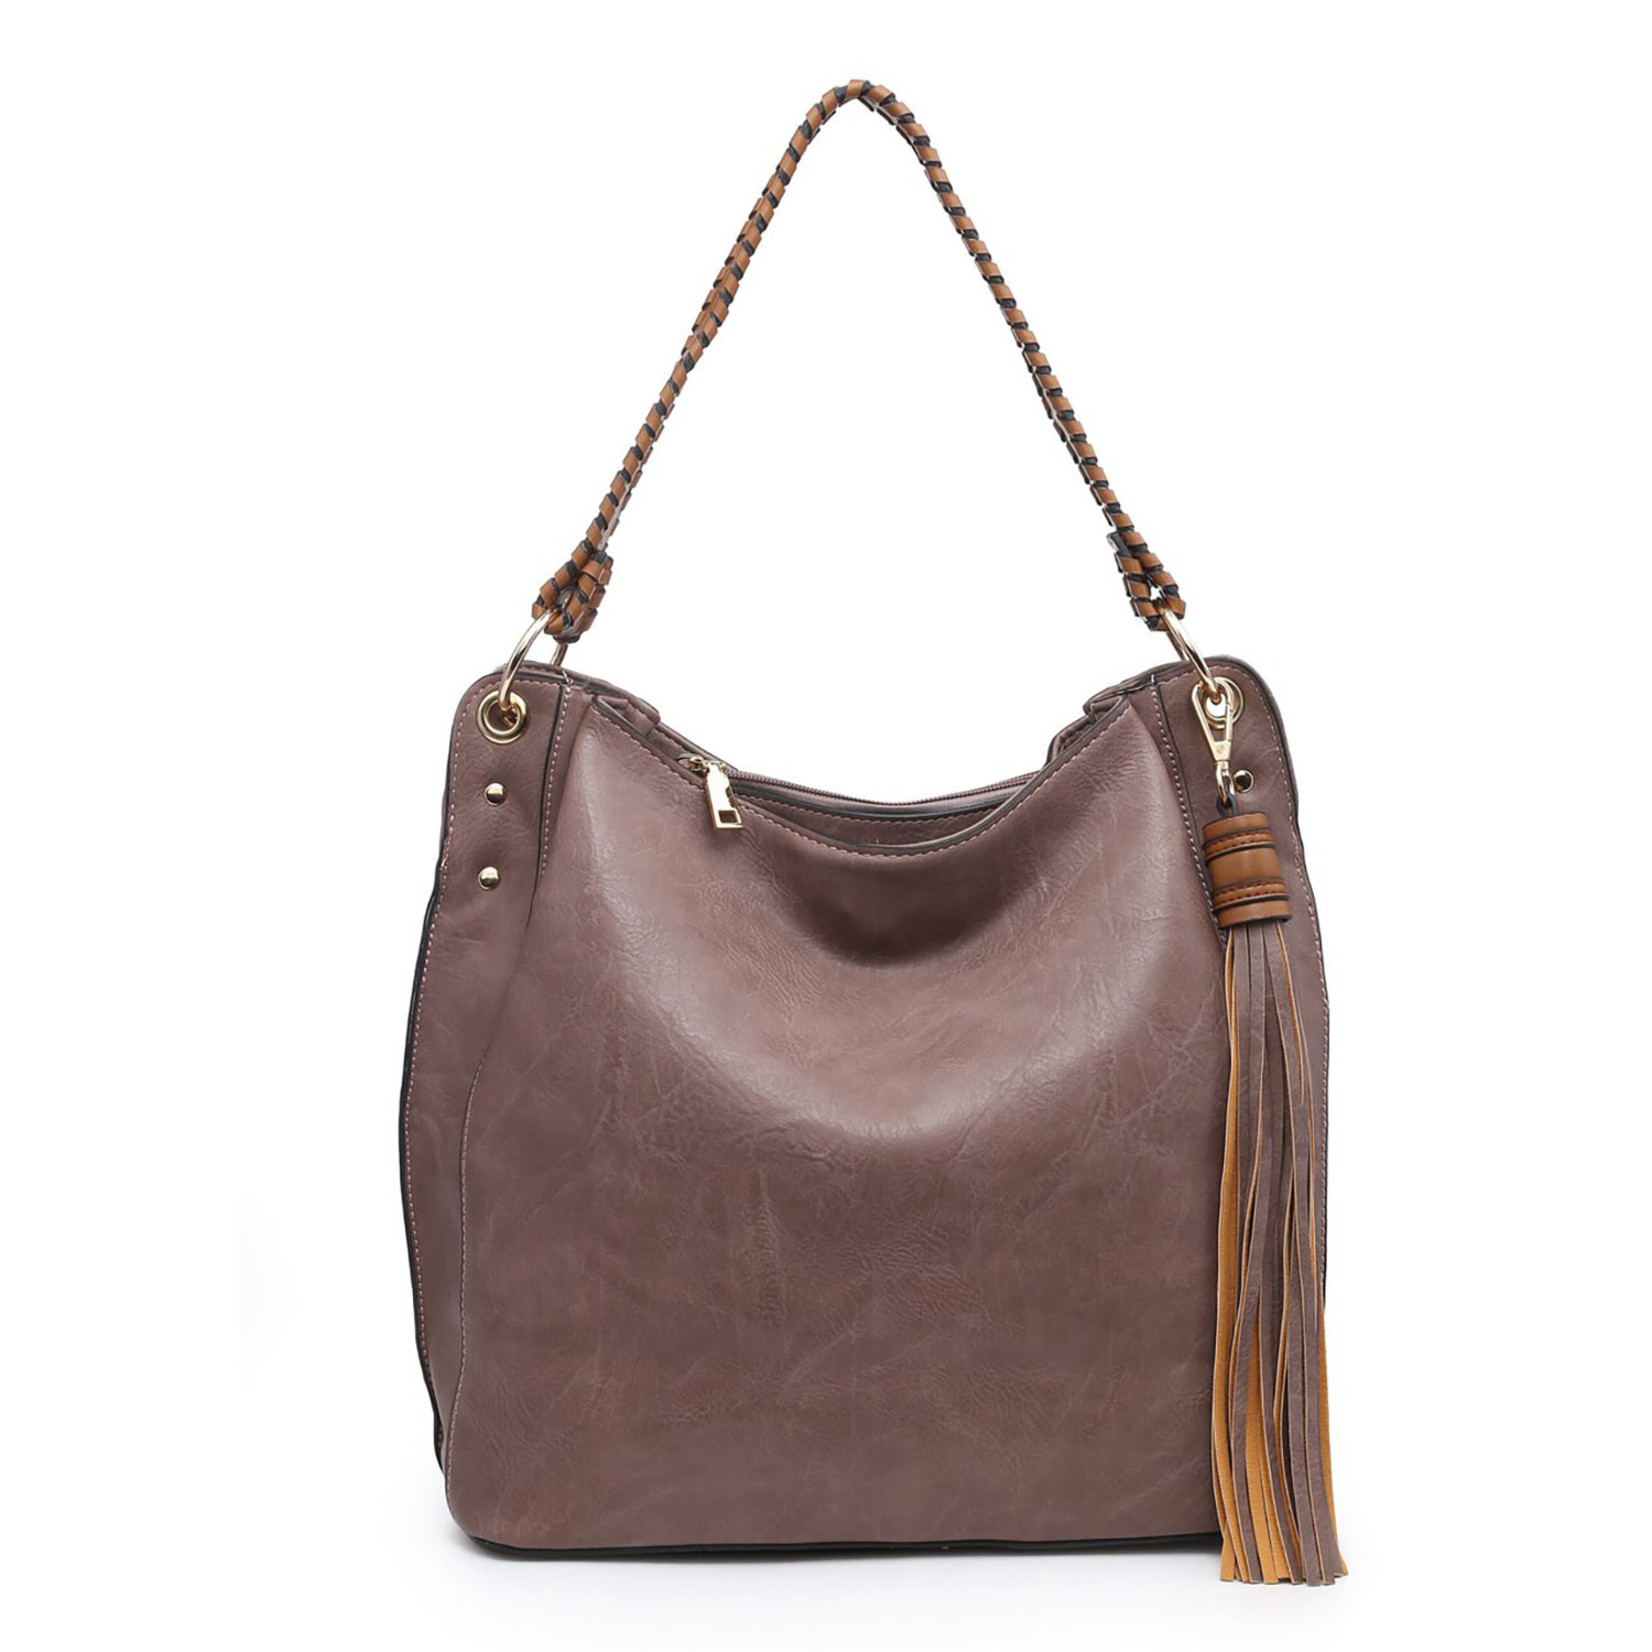 Jen & Co M1861-VL Amber Hobo Bag - Violet